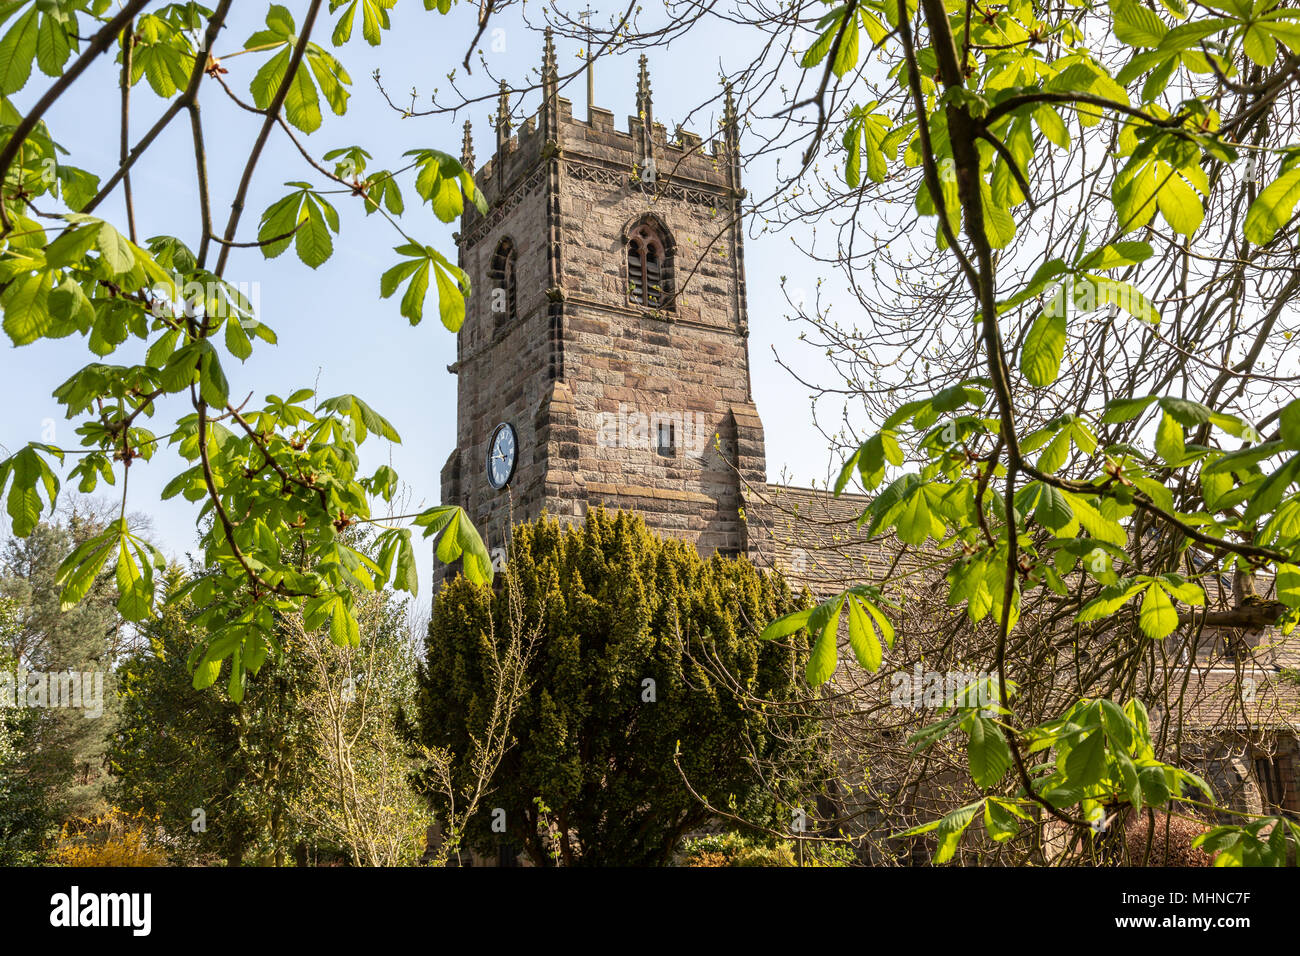 St Peters church in the centre of the historic village of Prestbury, Cheshire - Stock Image